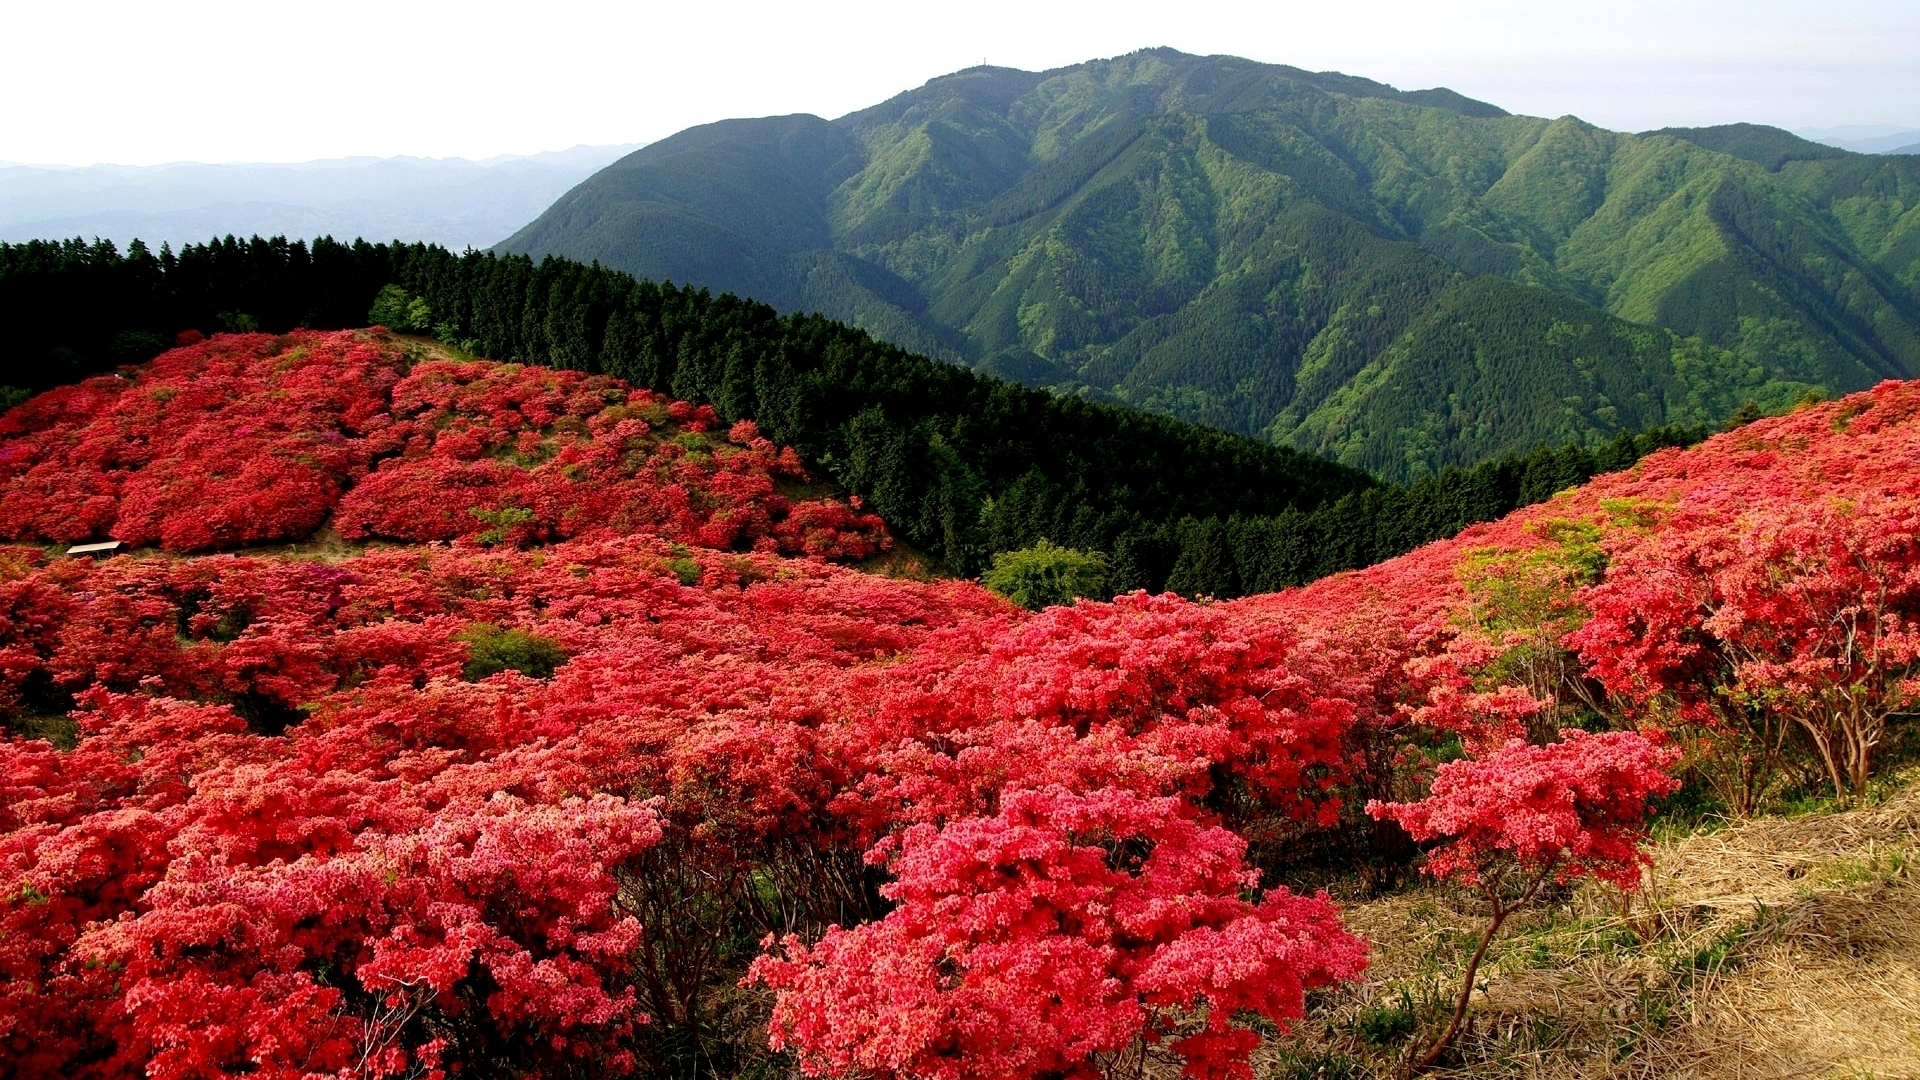 23484 download wallpaper Landscape, Flowers, Mountains screensavers and pictures for free